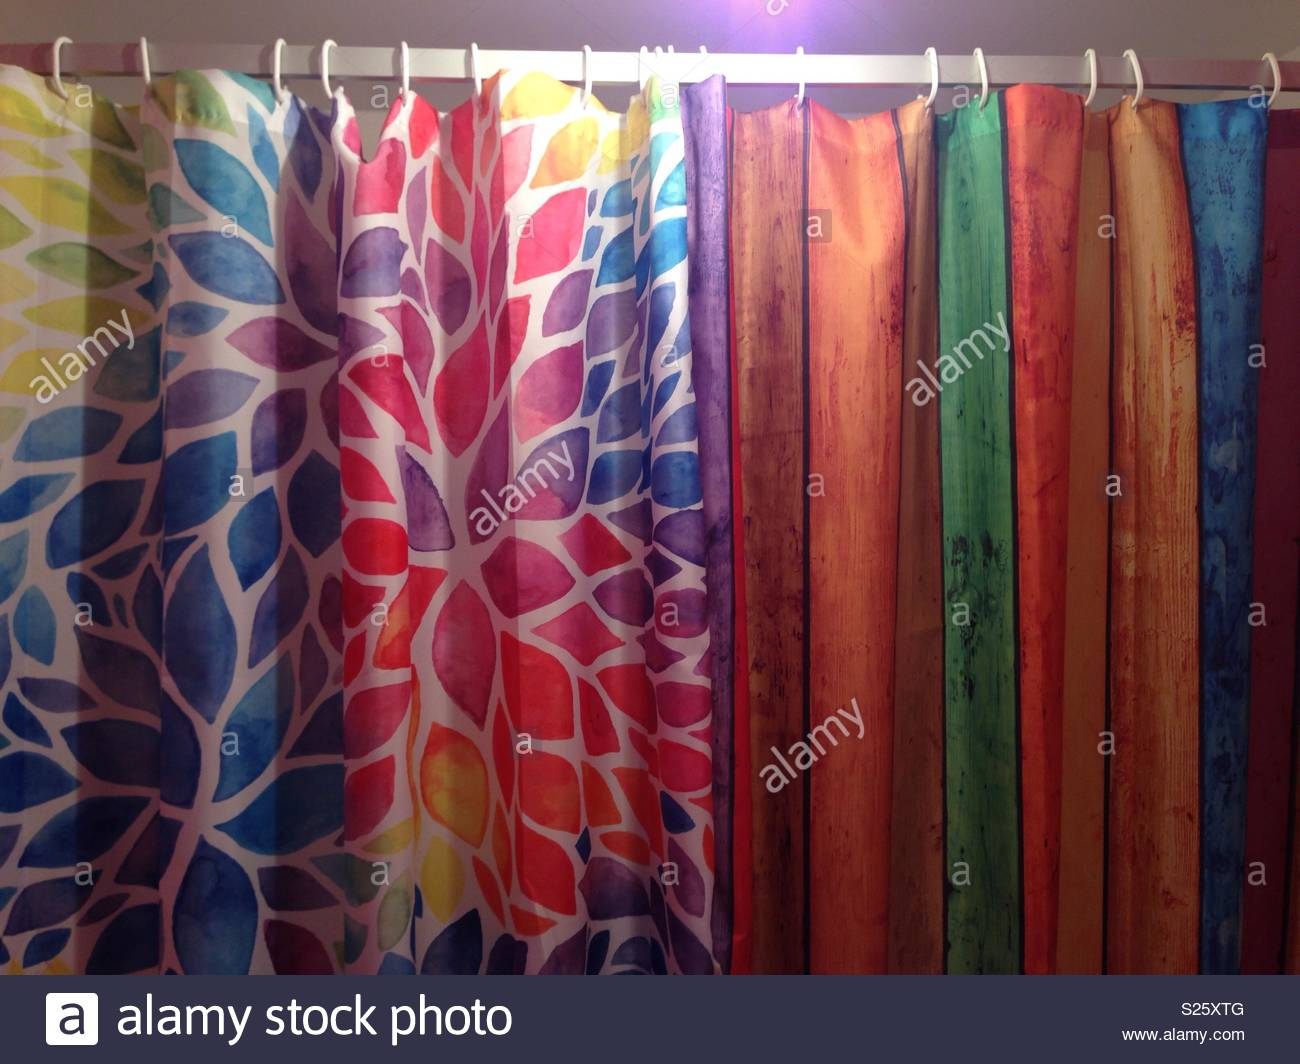 Two Different Bright Vibrant And Colourful Shower Curtains Hanging Together